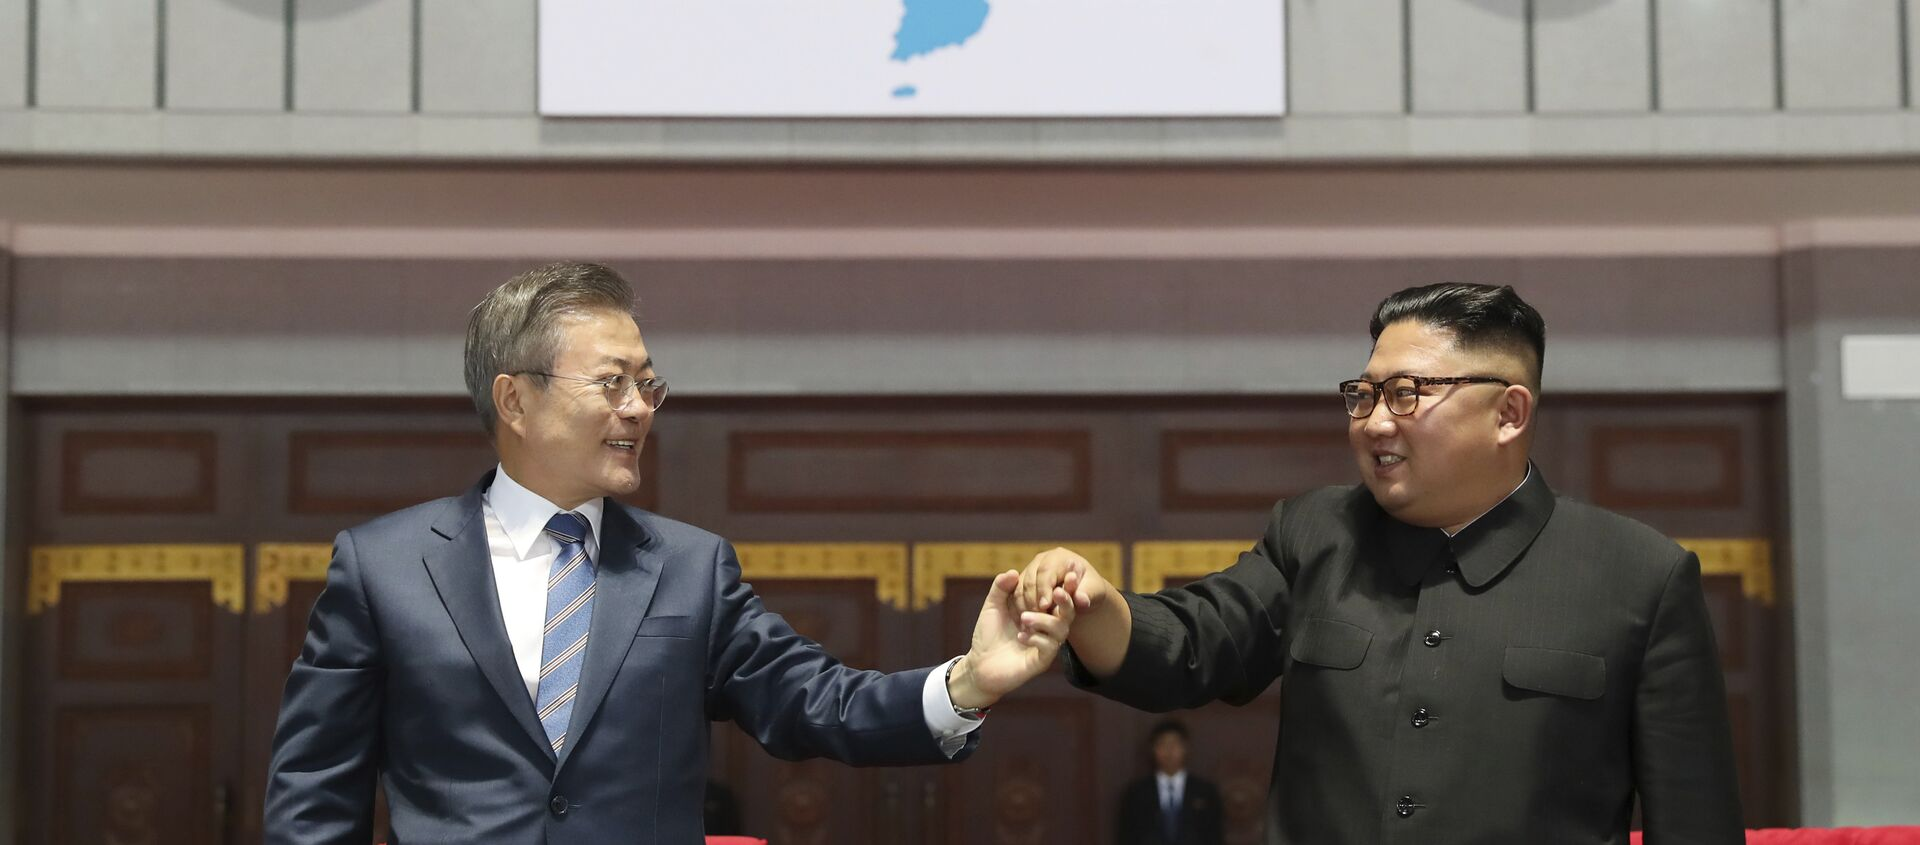 South Korean President Moon Jae-in, left, and North Korean leader Kim Jong Un hold their hands after watching the mass games performance of The Glorious Country at May Day Stadium in Pyongyang, North Korea, Wednesday, Sept. 19, 2018. Unification flag symbol at top centre. - Sputnik International, 1920, 30.07.2021